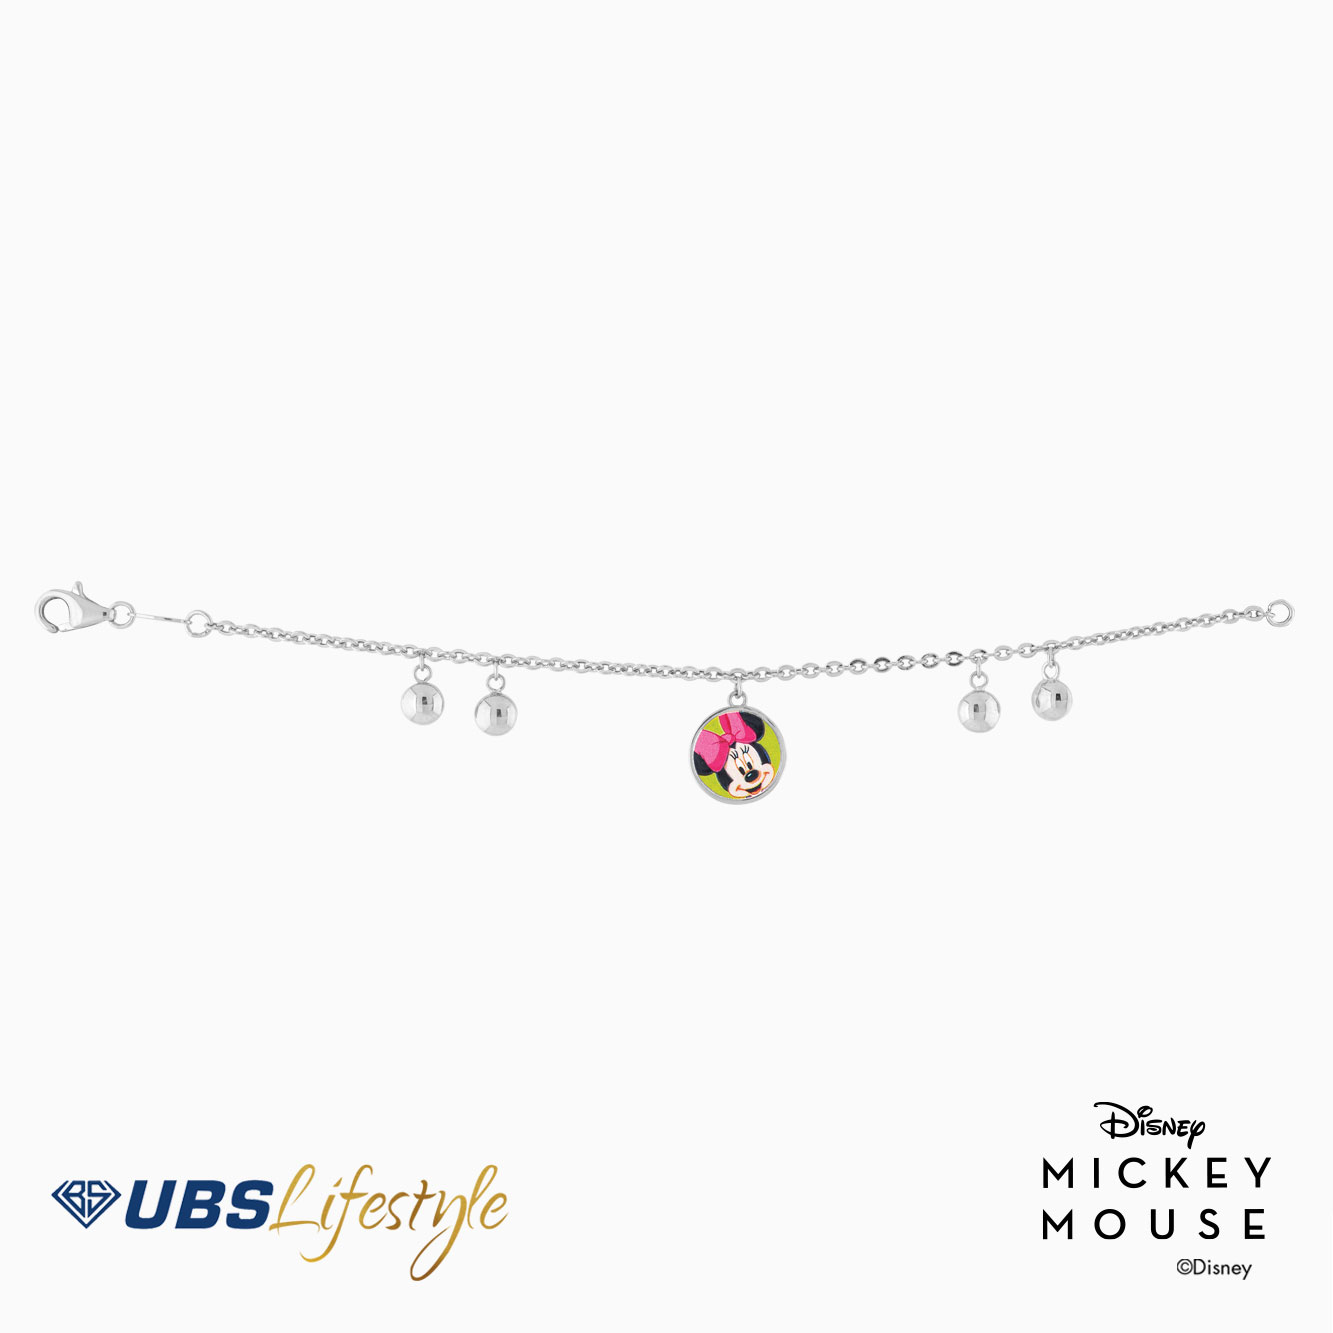 GELANG EMAS DISNEY MINNIE MOUSE